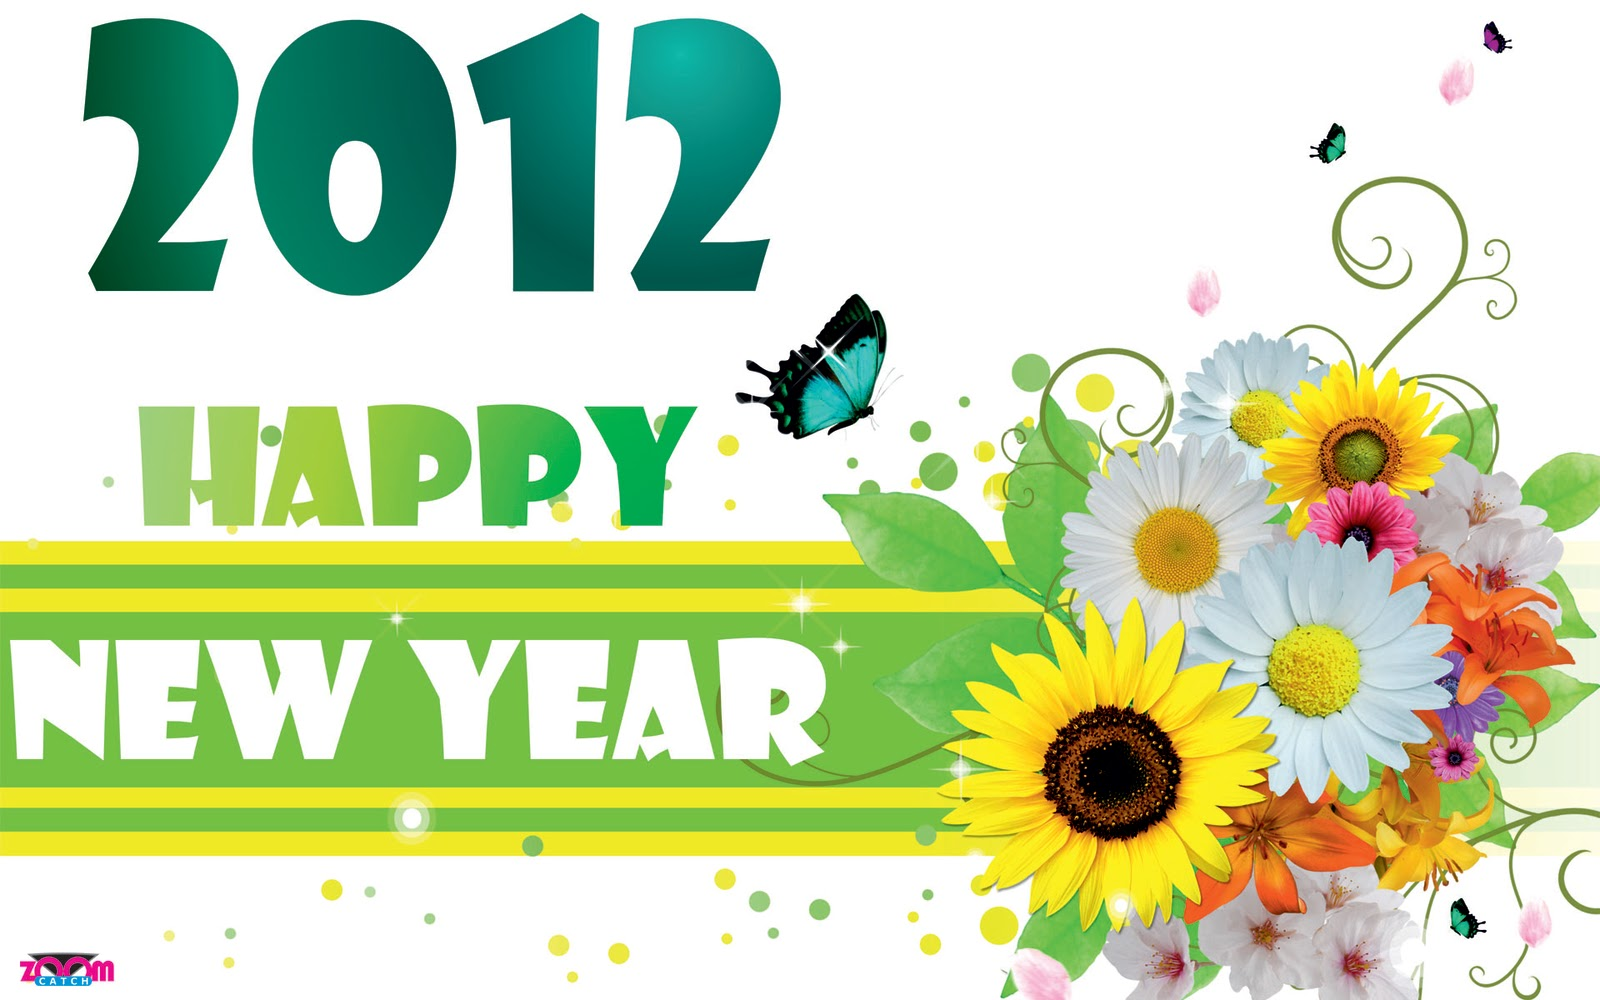 Wishing You A Happy New Year Email Template | Search Results ...